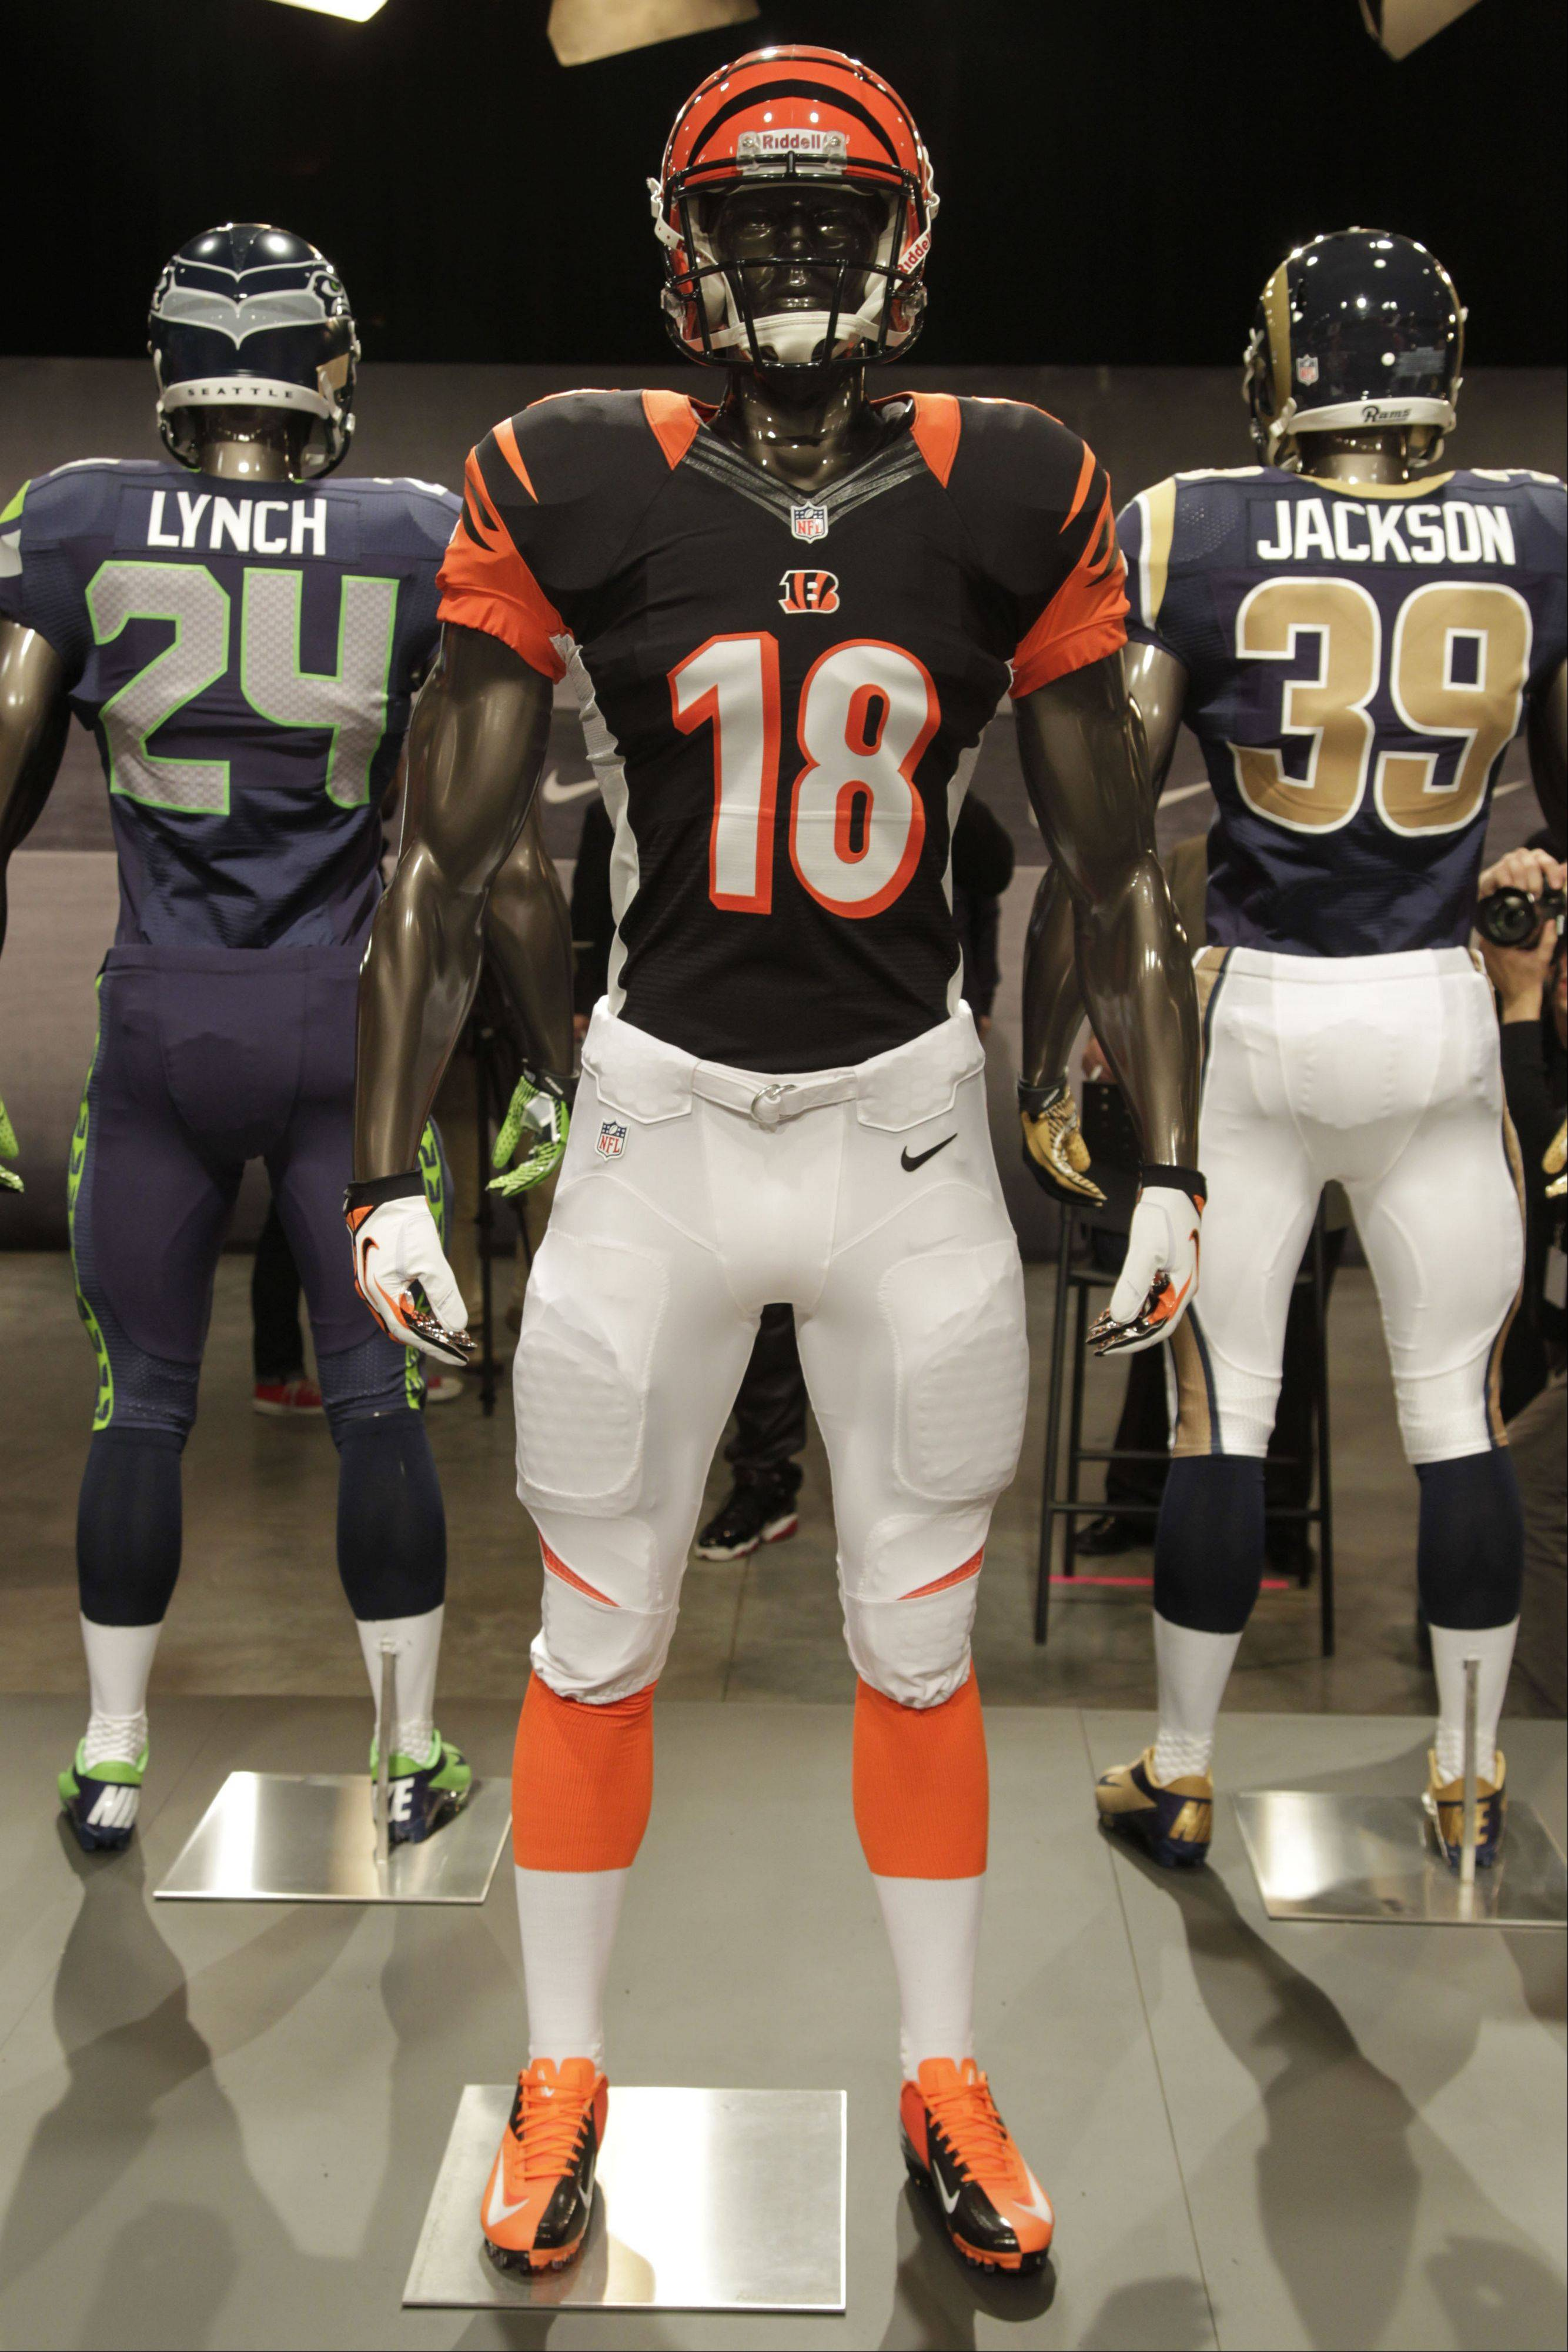 The new Cincinnati Bengals uniform is displayed on a mannequin in New York, Tuesday, April 3, 2012. NFL has unveiled its new sleek uniforms designed by Nike. While most of the new uniforms are not very different visually, they all are made with new technology that make them lighter, dryer and more comfortable.